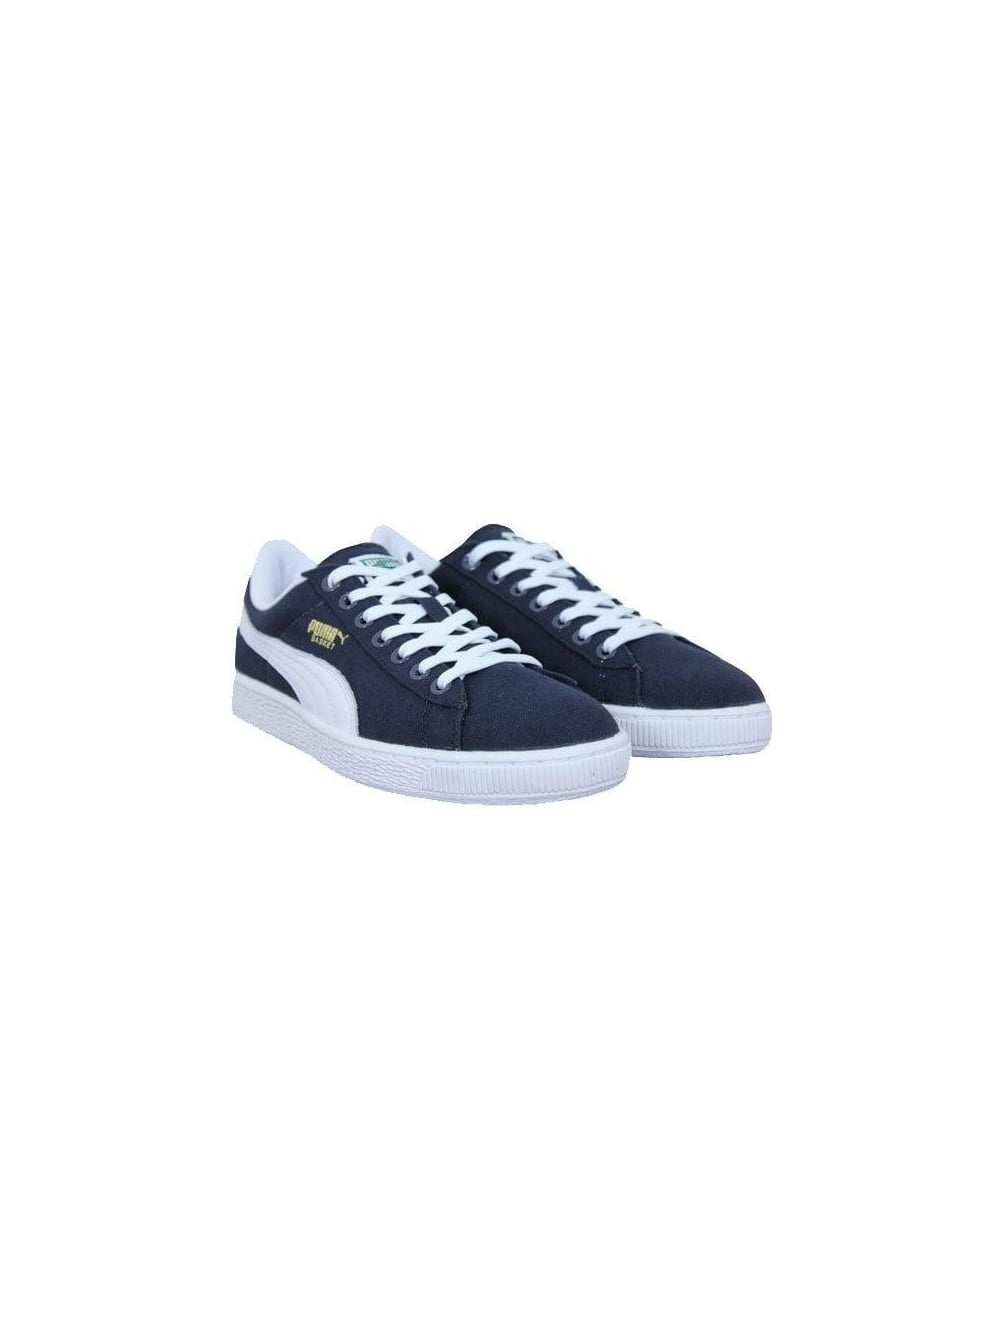 huge selection of fc644 082fc puma-basket-classic-canvas-navy-white-p20484-251678 image.jpg